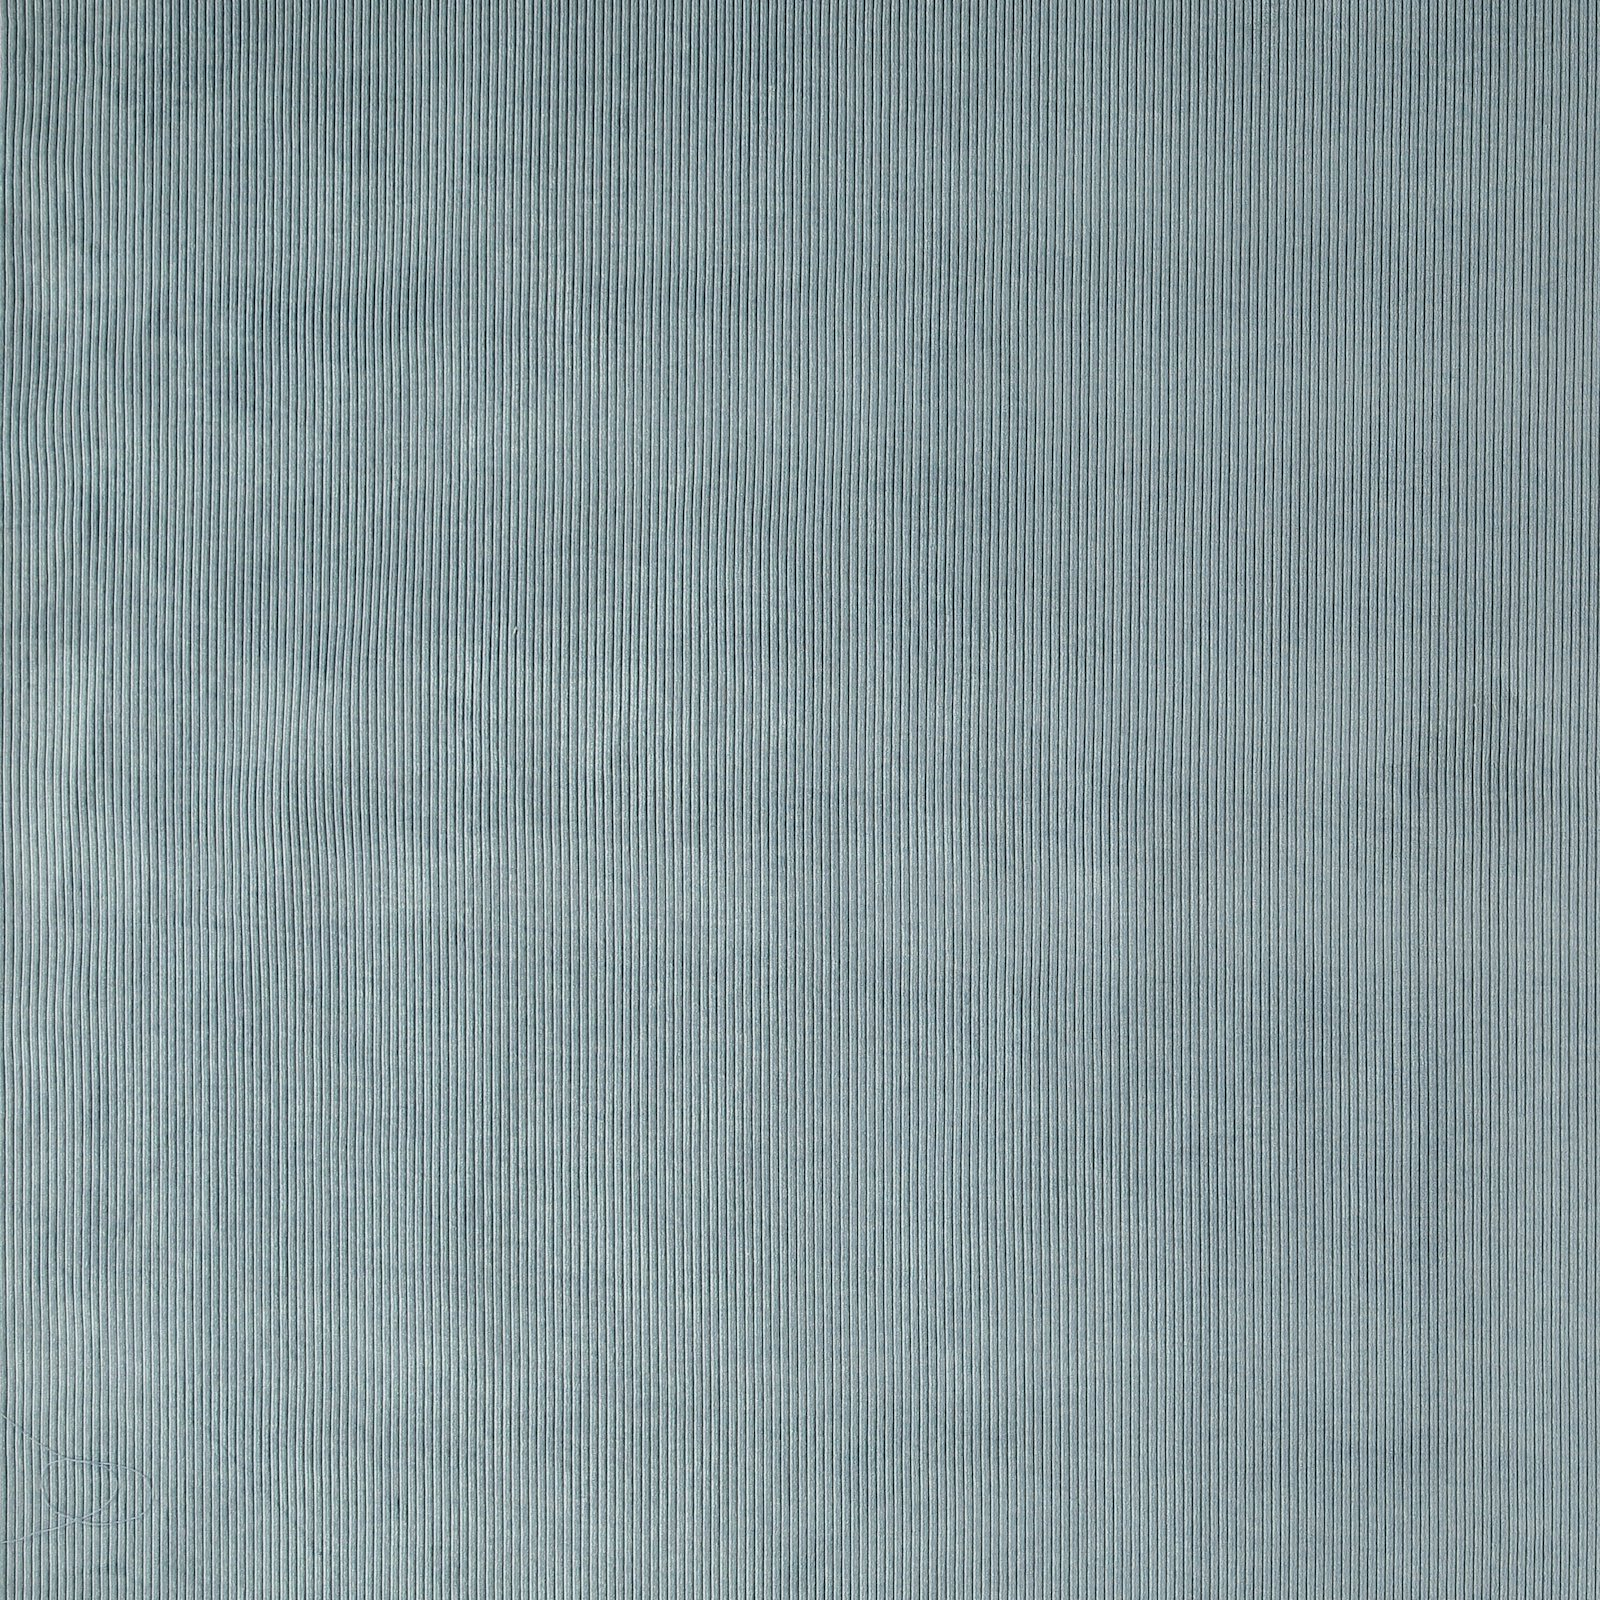 Upholstery corduroy 6 wales pastel blue 824036_pack_sp